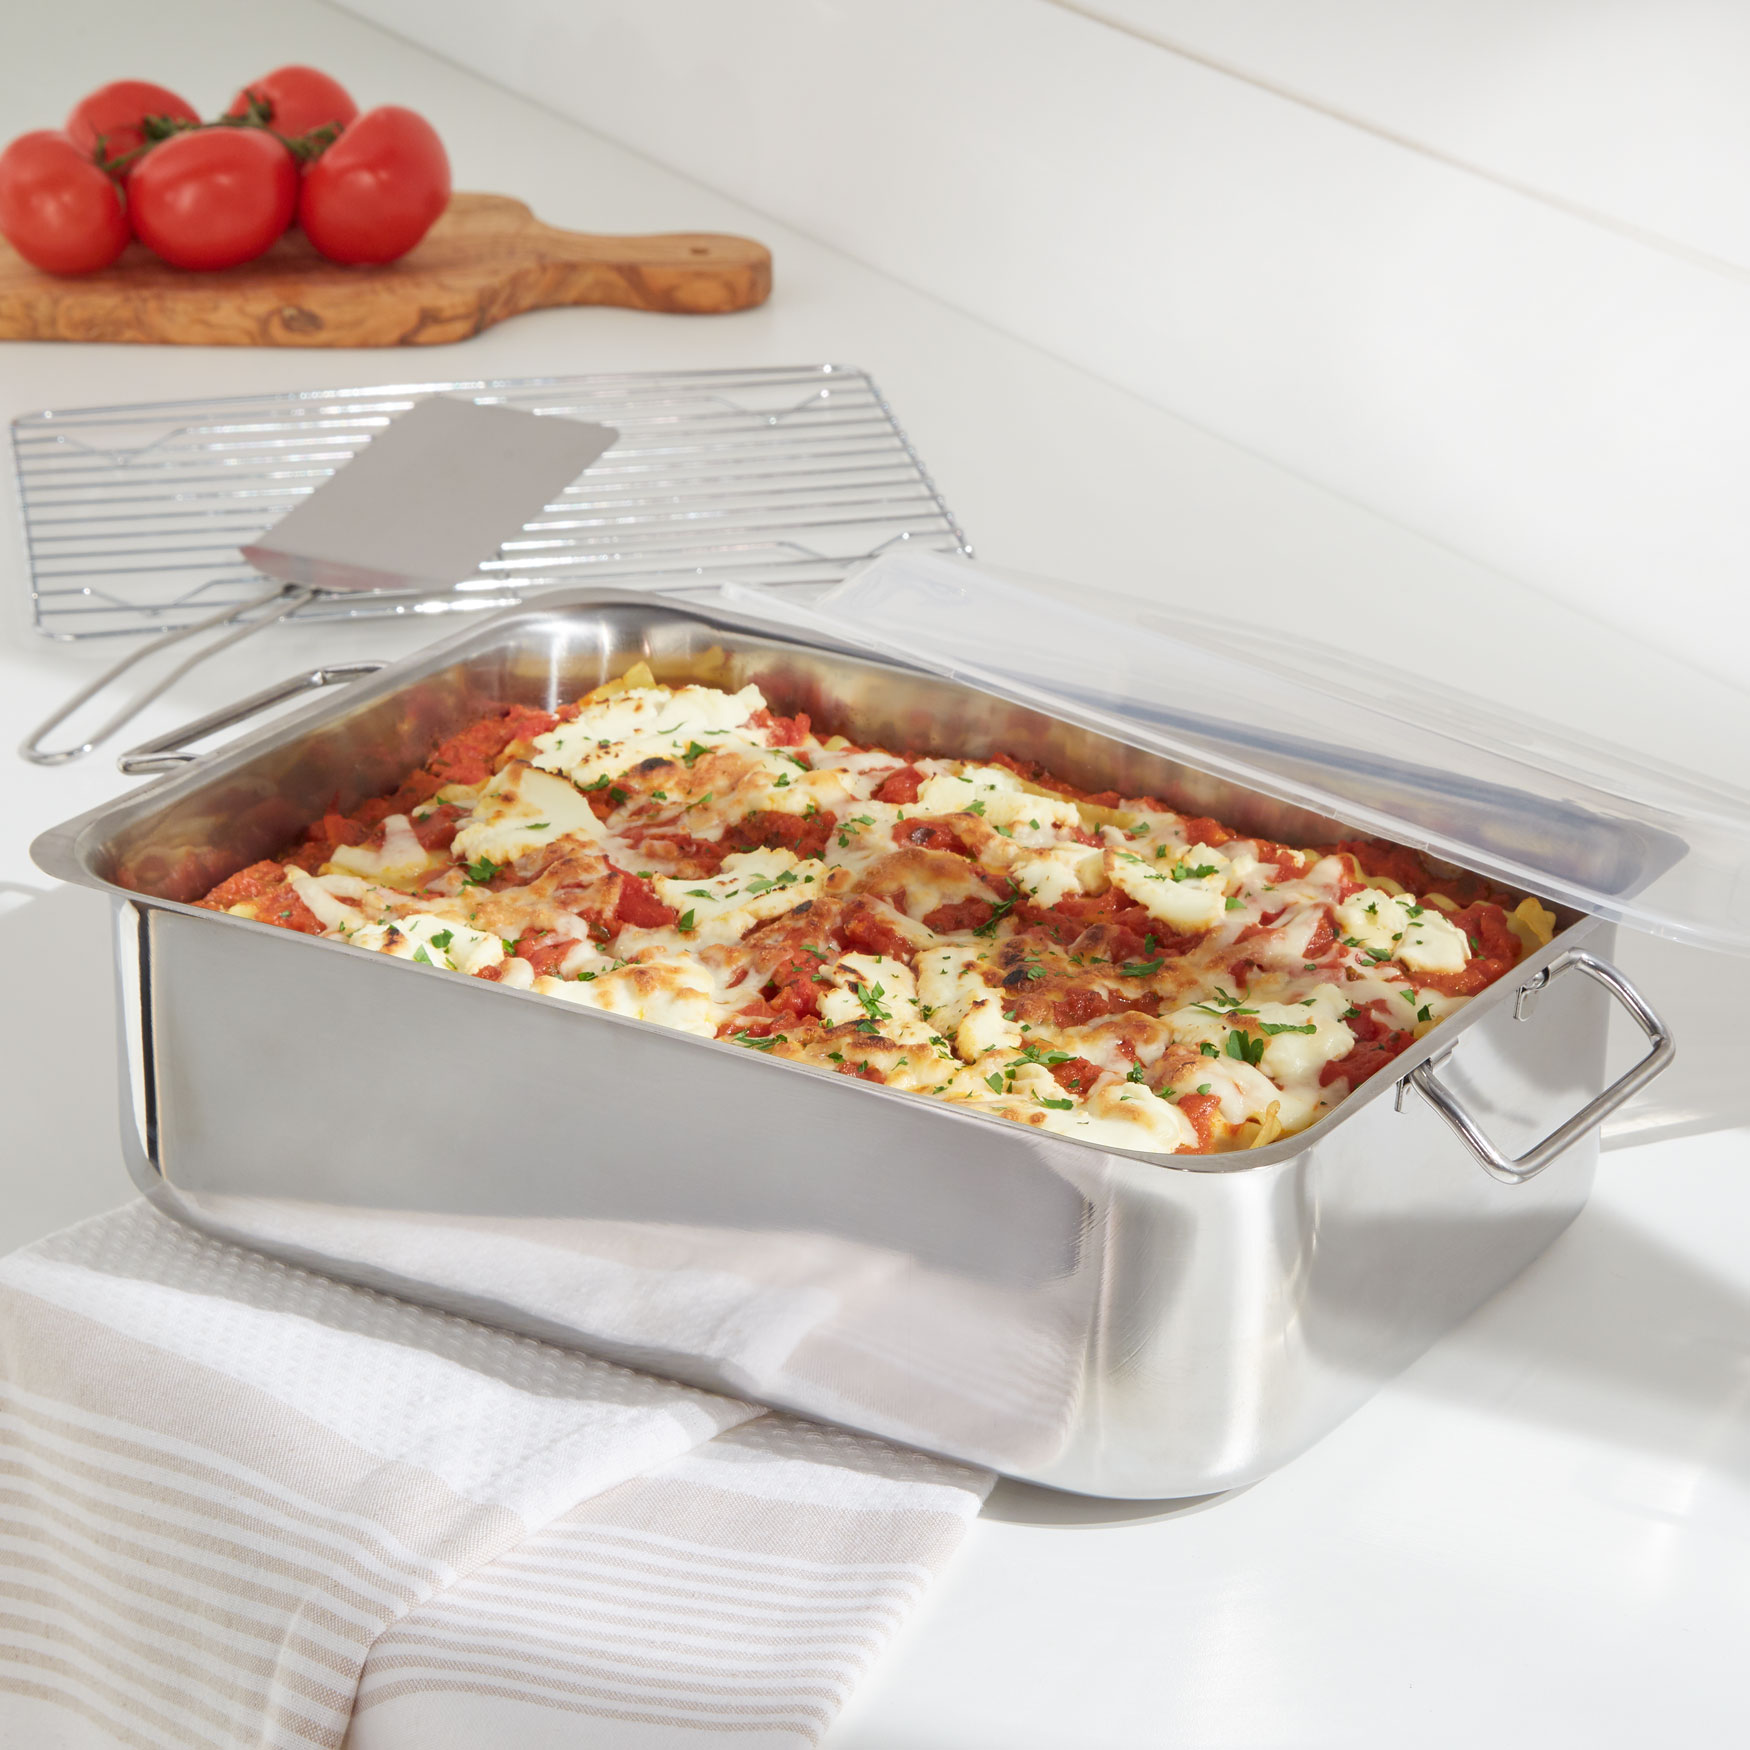 4-Pc. All-In-One Roaster & Lasagna Pan, STAINLESS